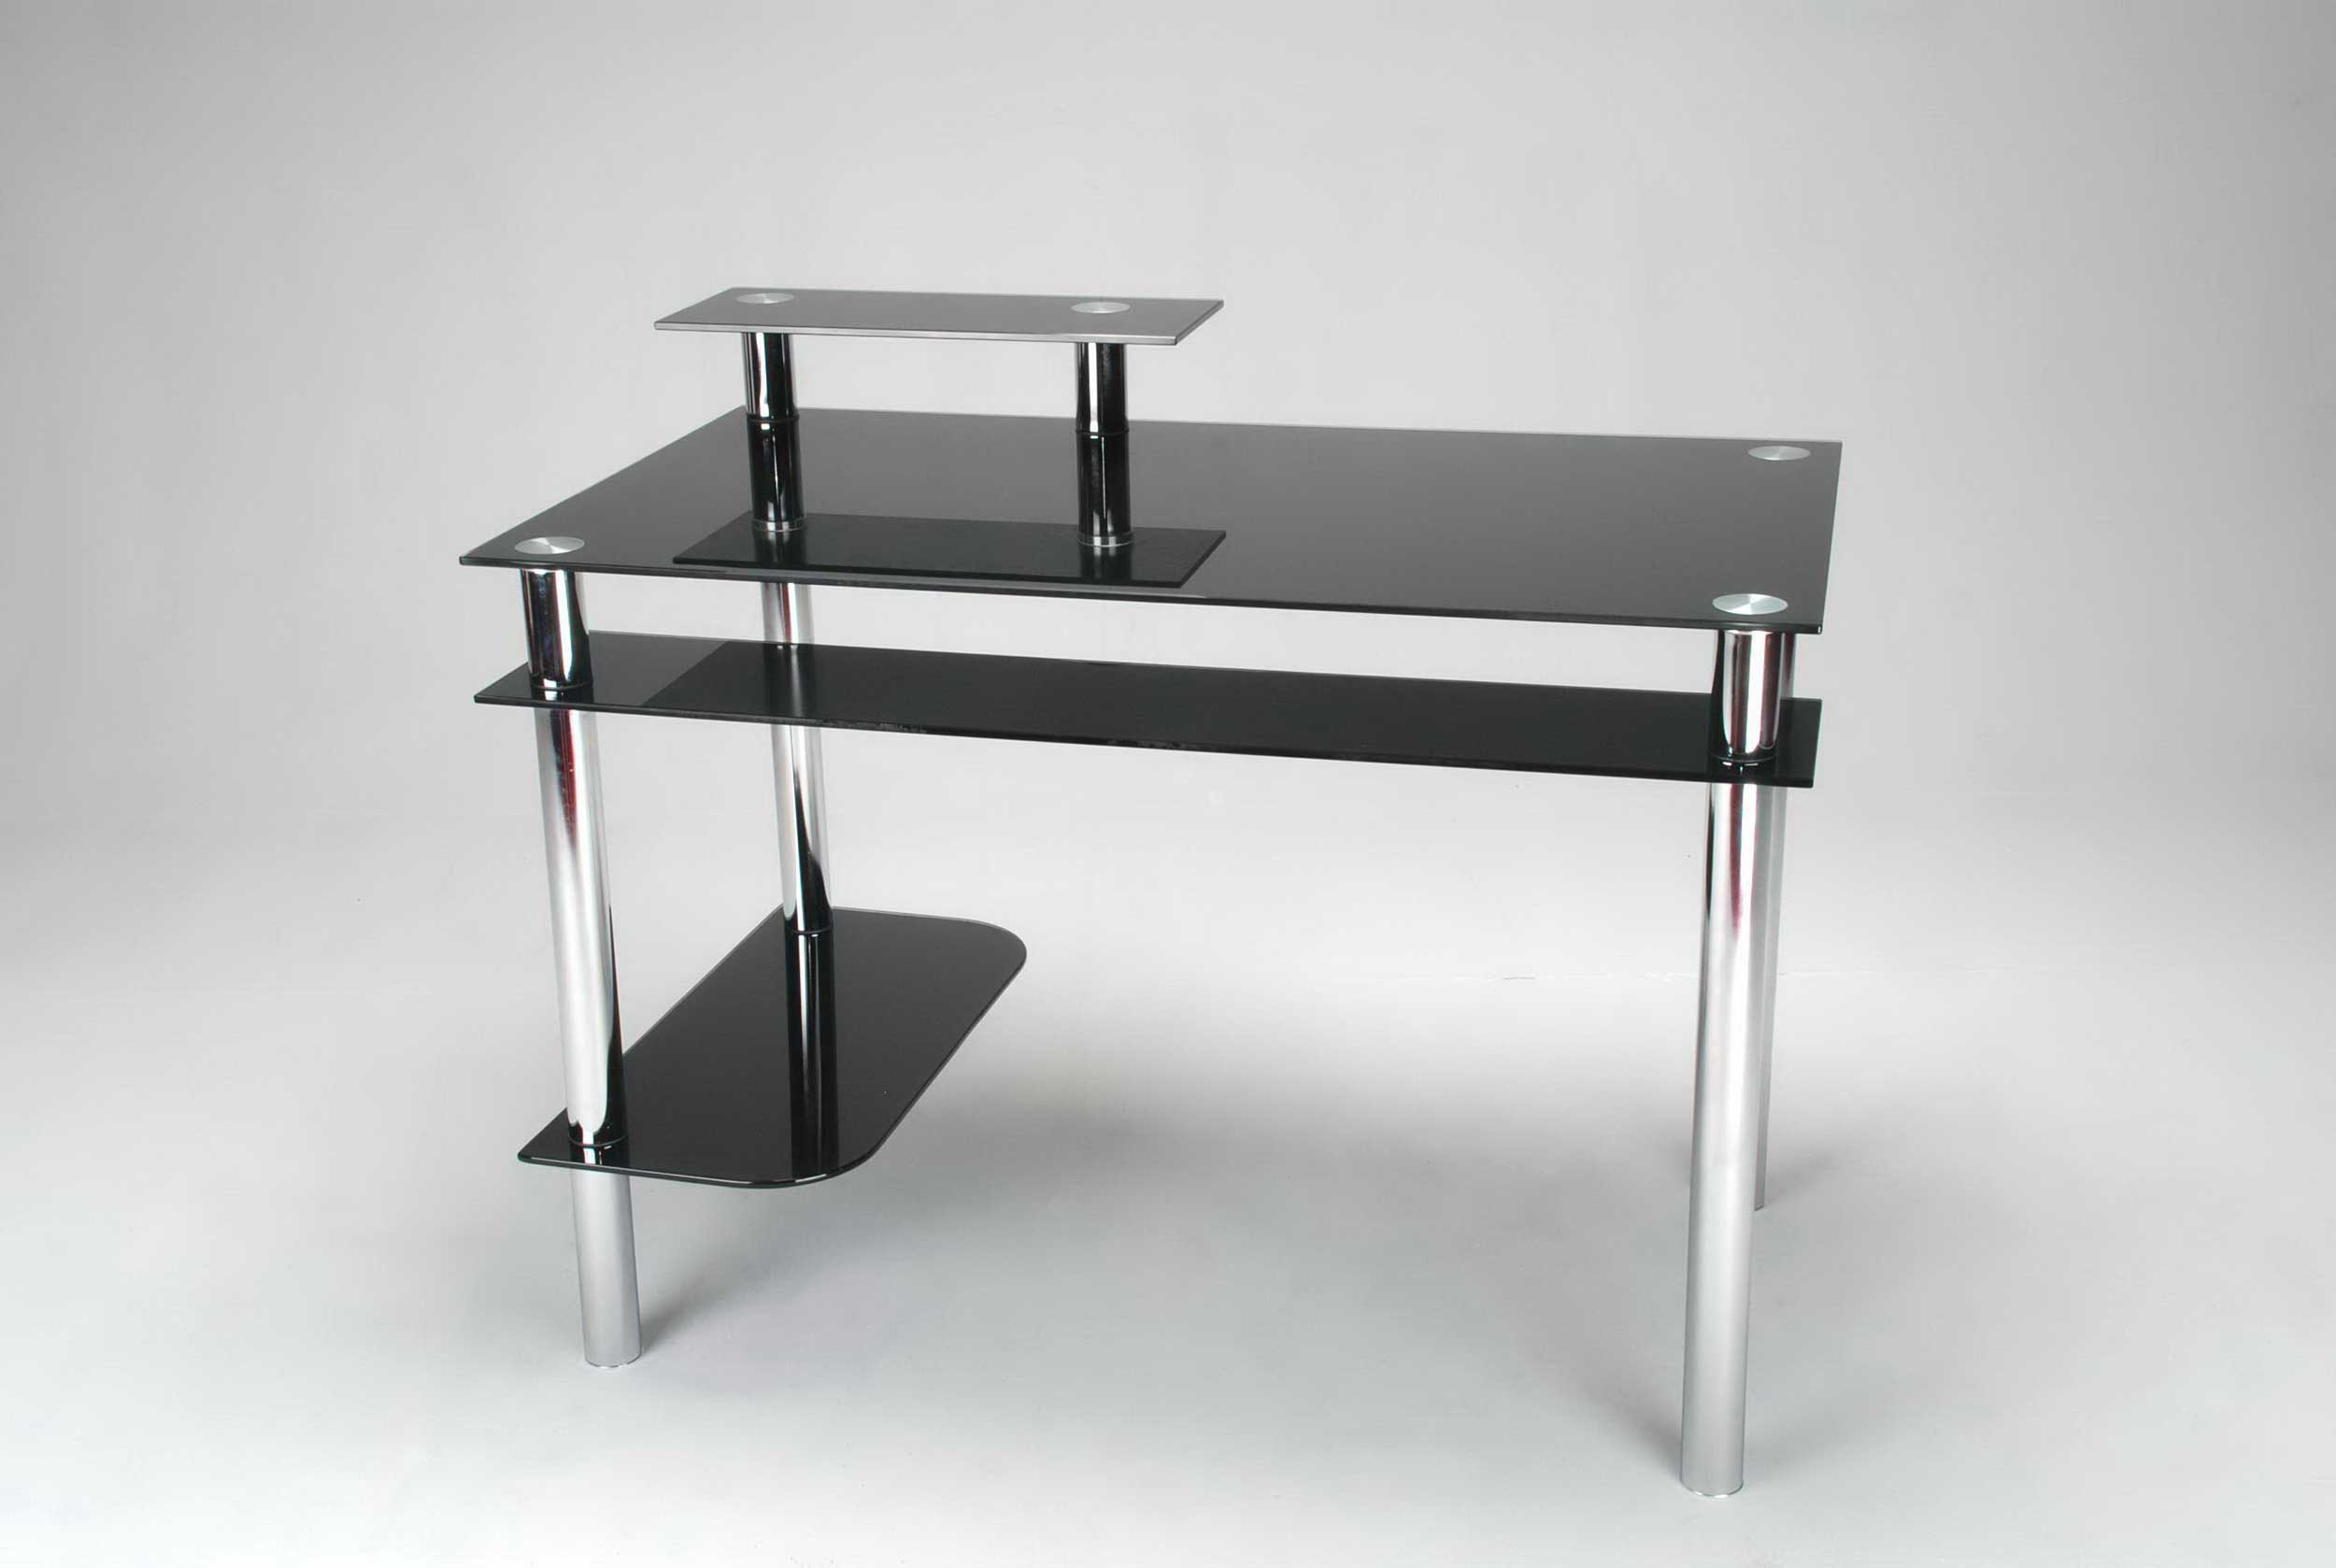 Black Glass Desk for Your Home Office | Office Furniture